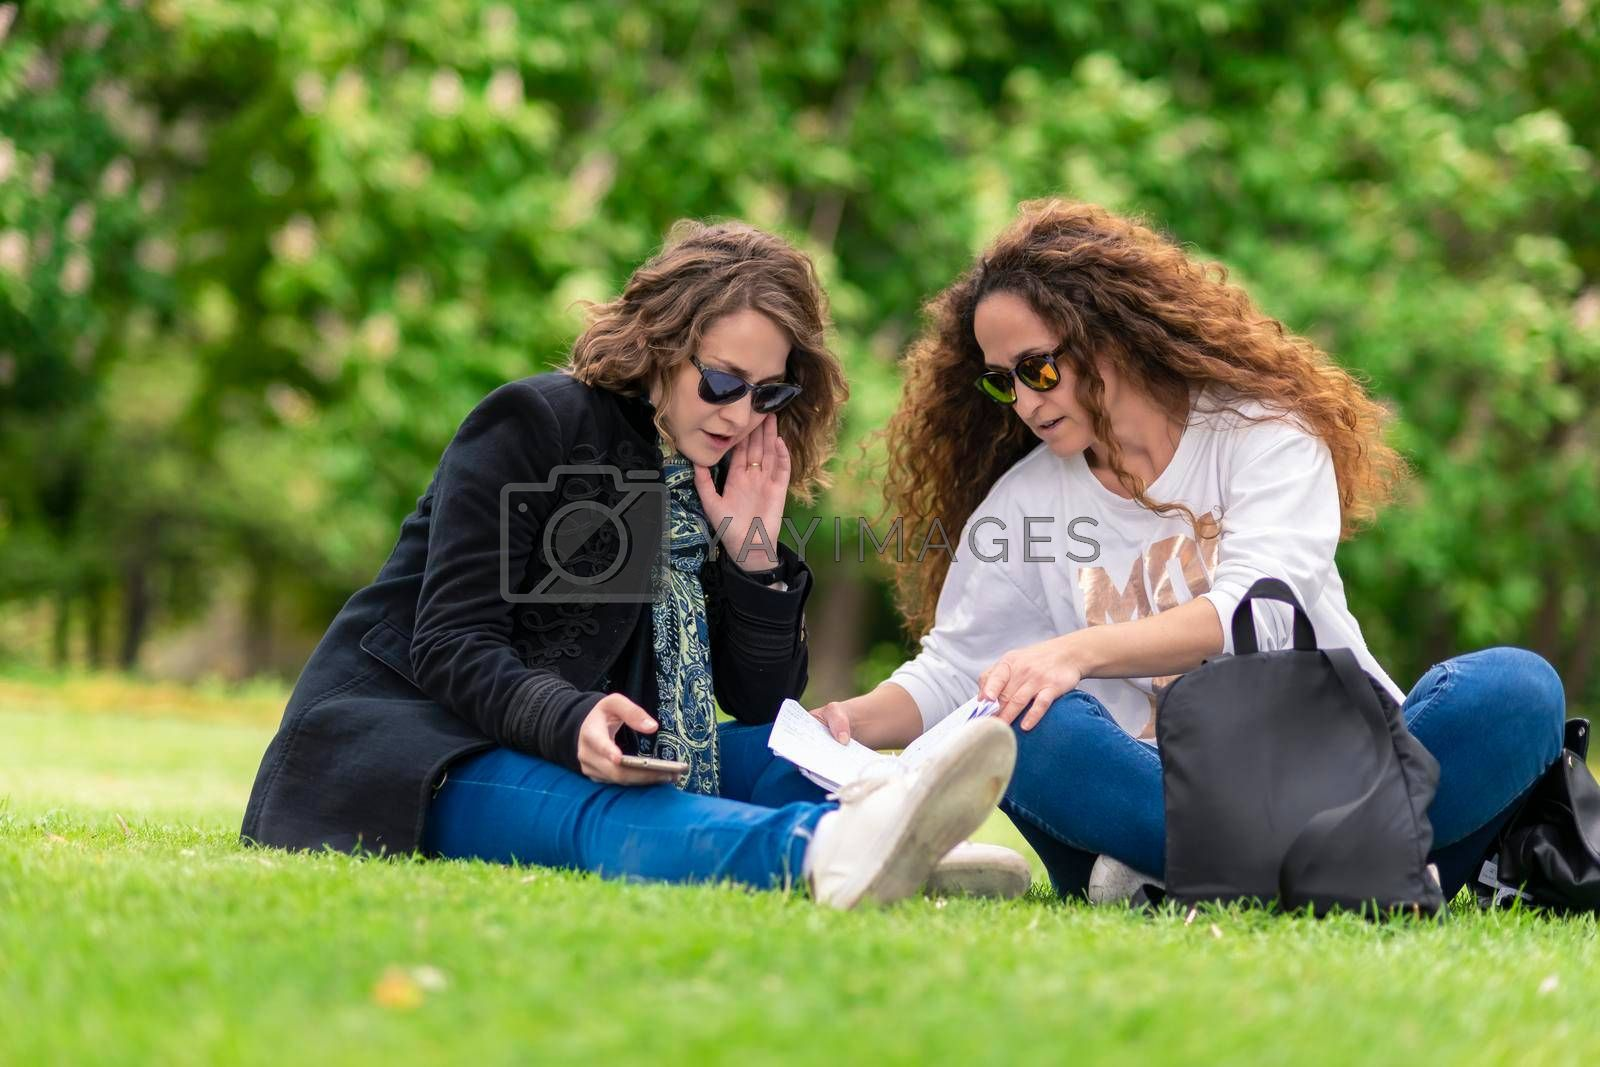 Talking and studying, with phone, relaxed in the park, sitting on the grass.